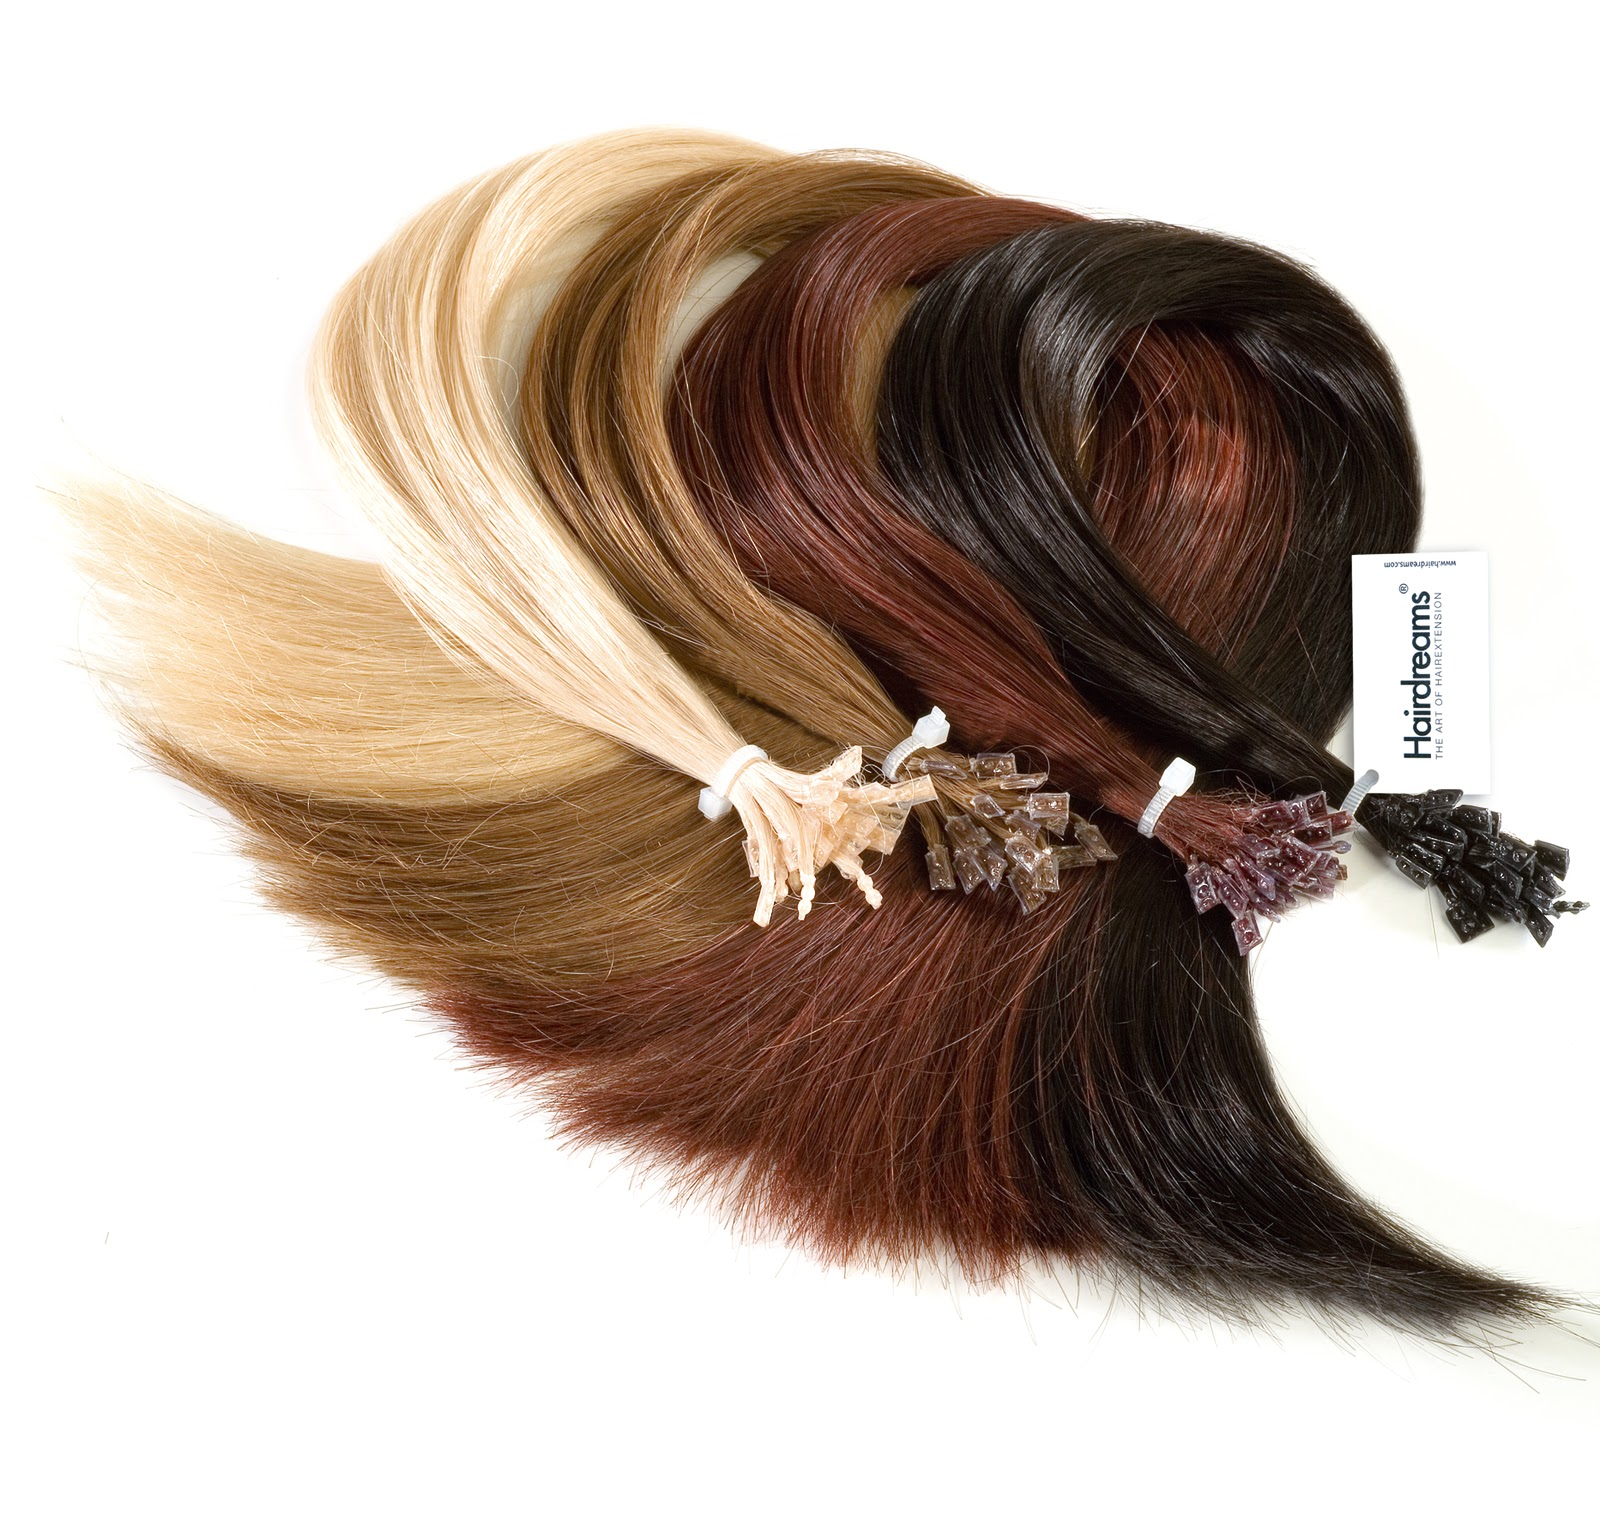 Hairdreams Extensions Lets Talk Hair